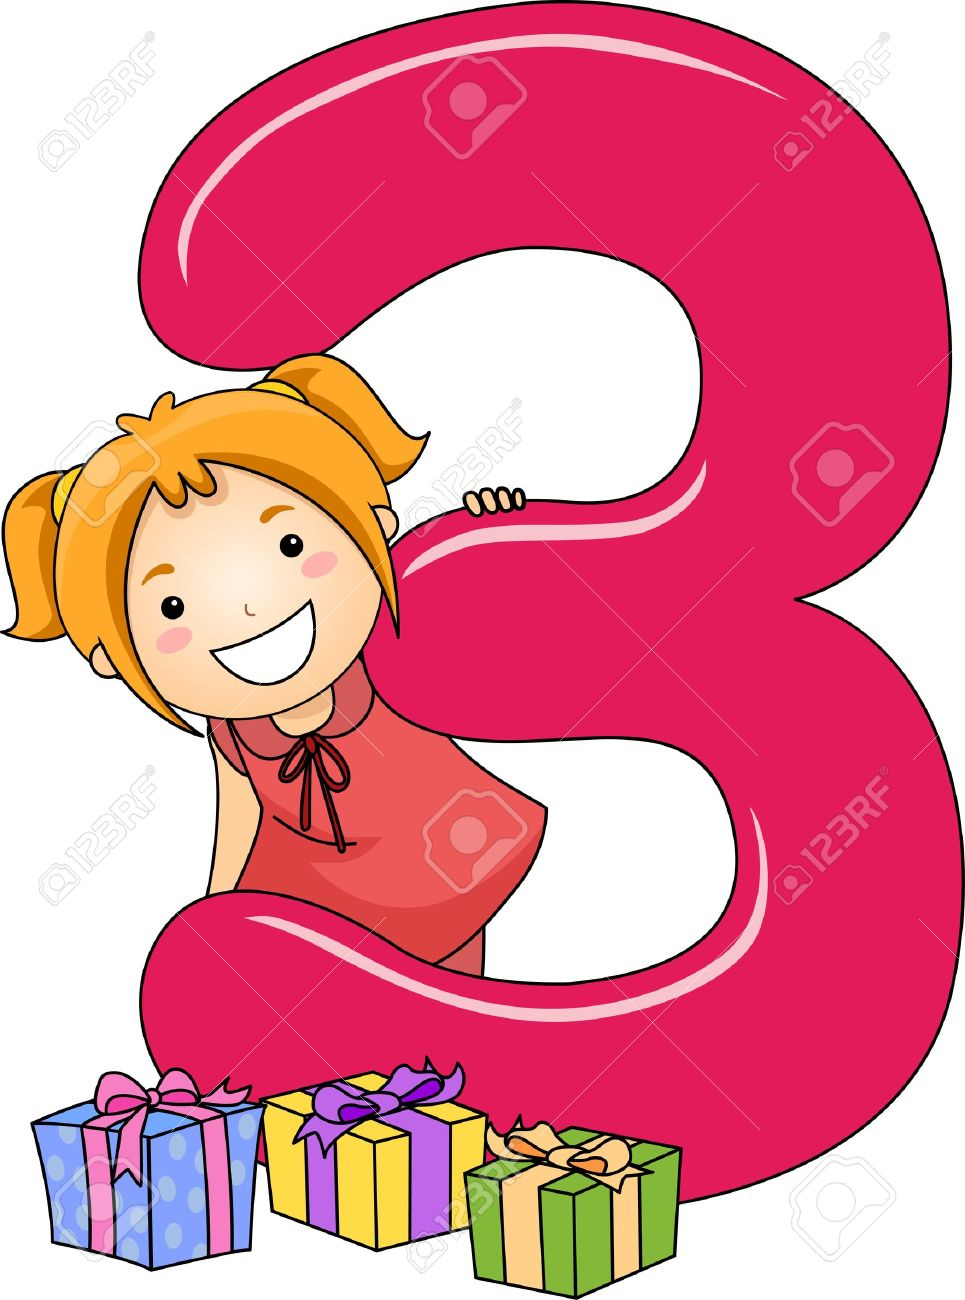 Preschool numbers clipart number 1 with dot clip free Preschool numbers clipart number 1 with dot - ClipartFox clip free